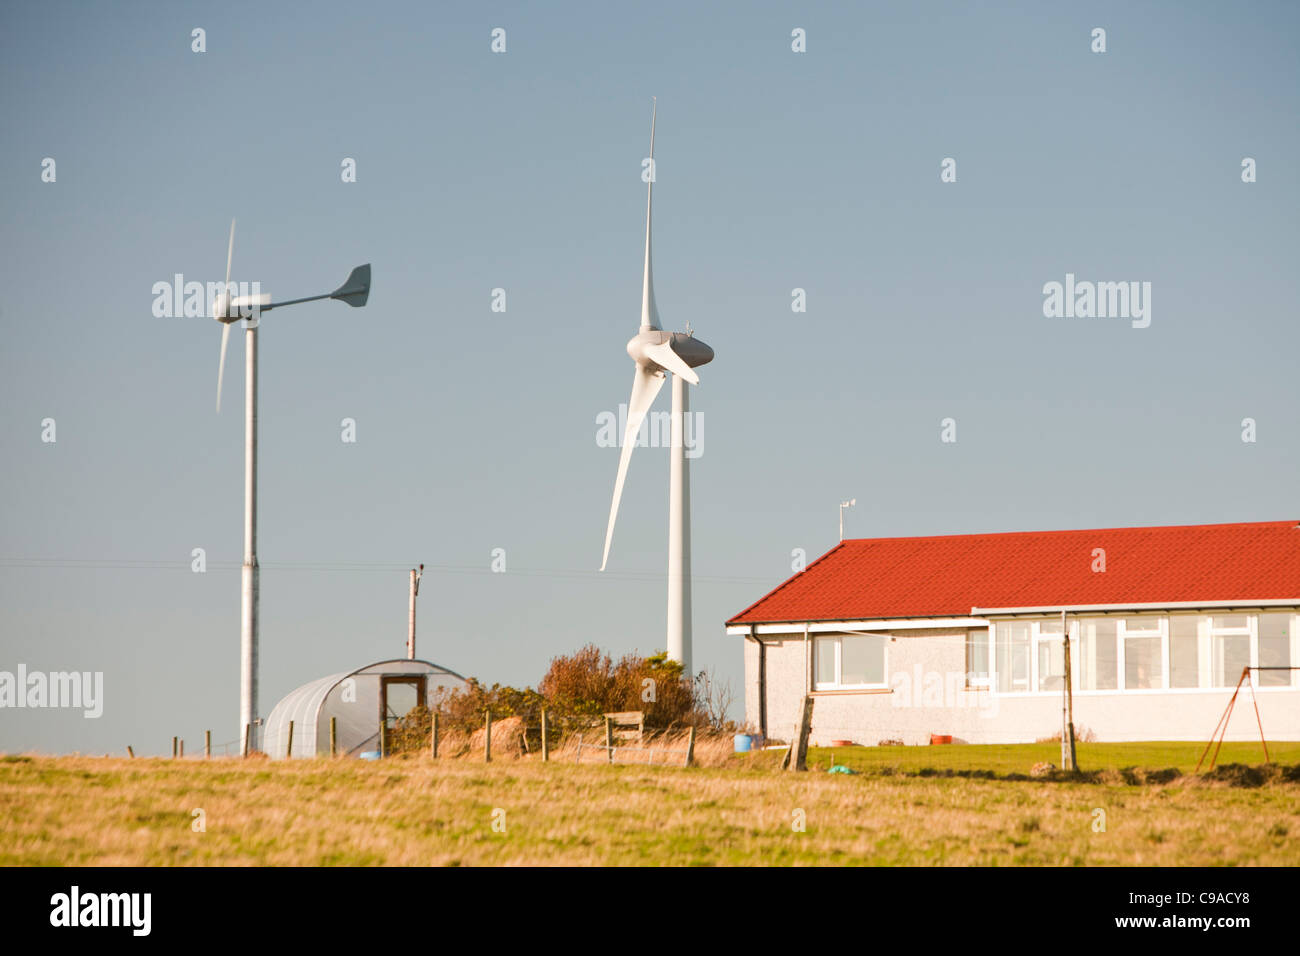 An Enercon 2.3 MW wind turbine on Flotta in the Orkney isles, Scotland, UK. - Stock Image